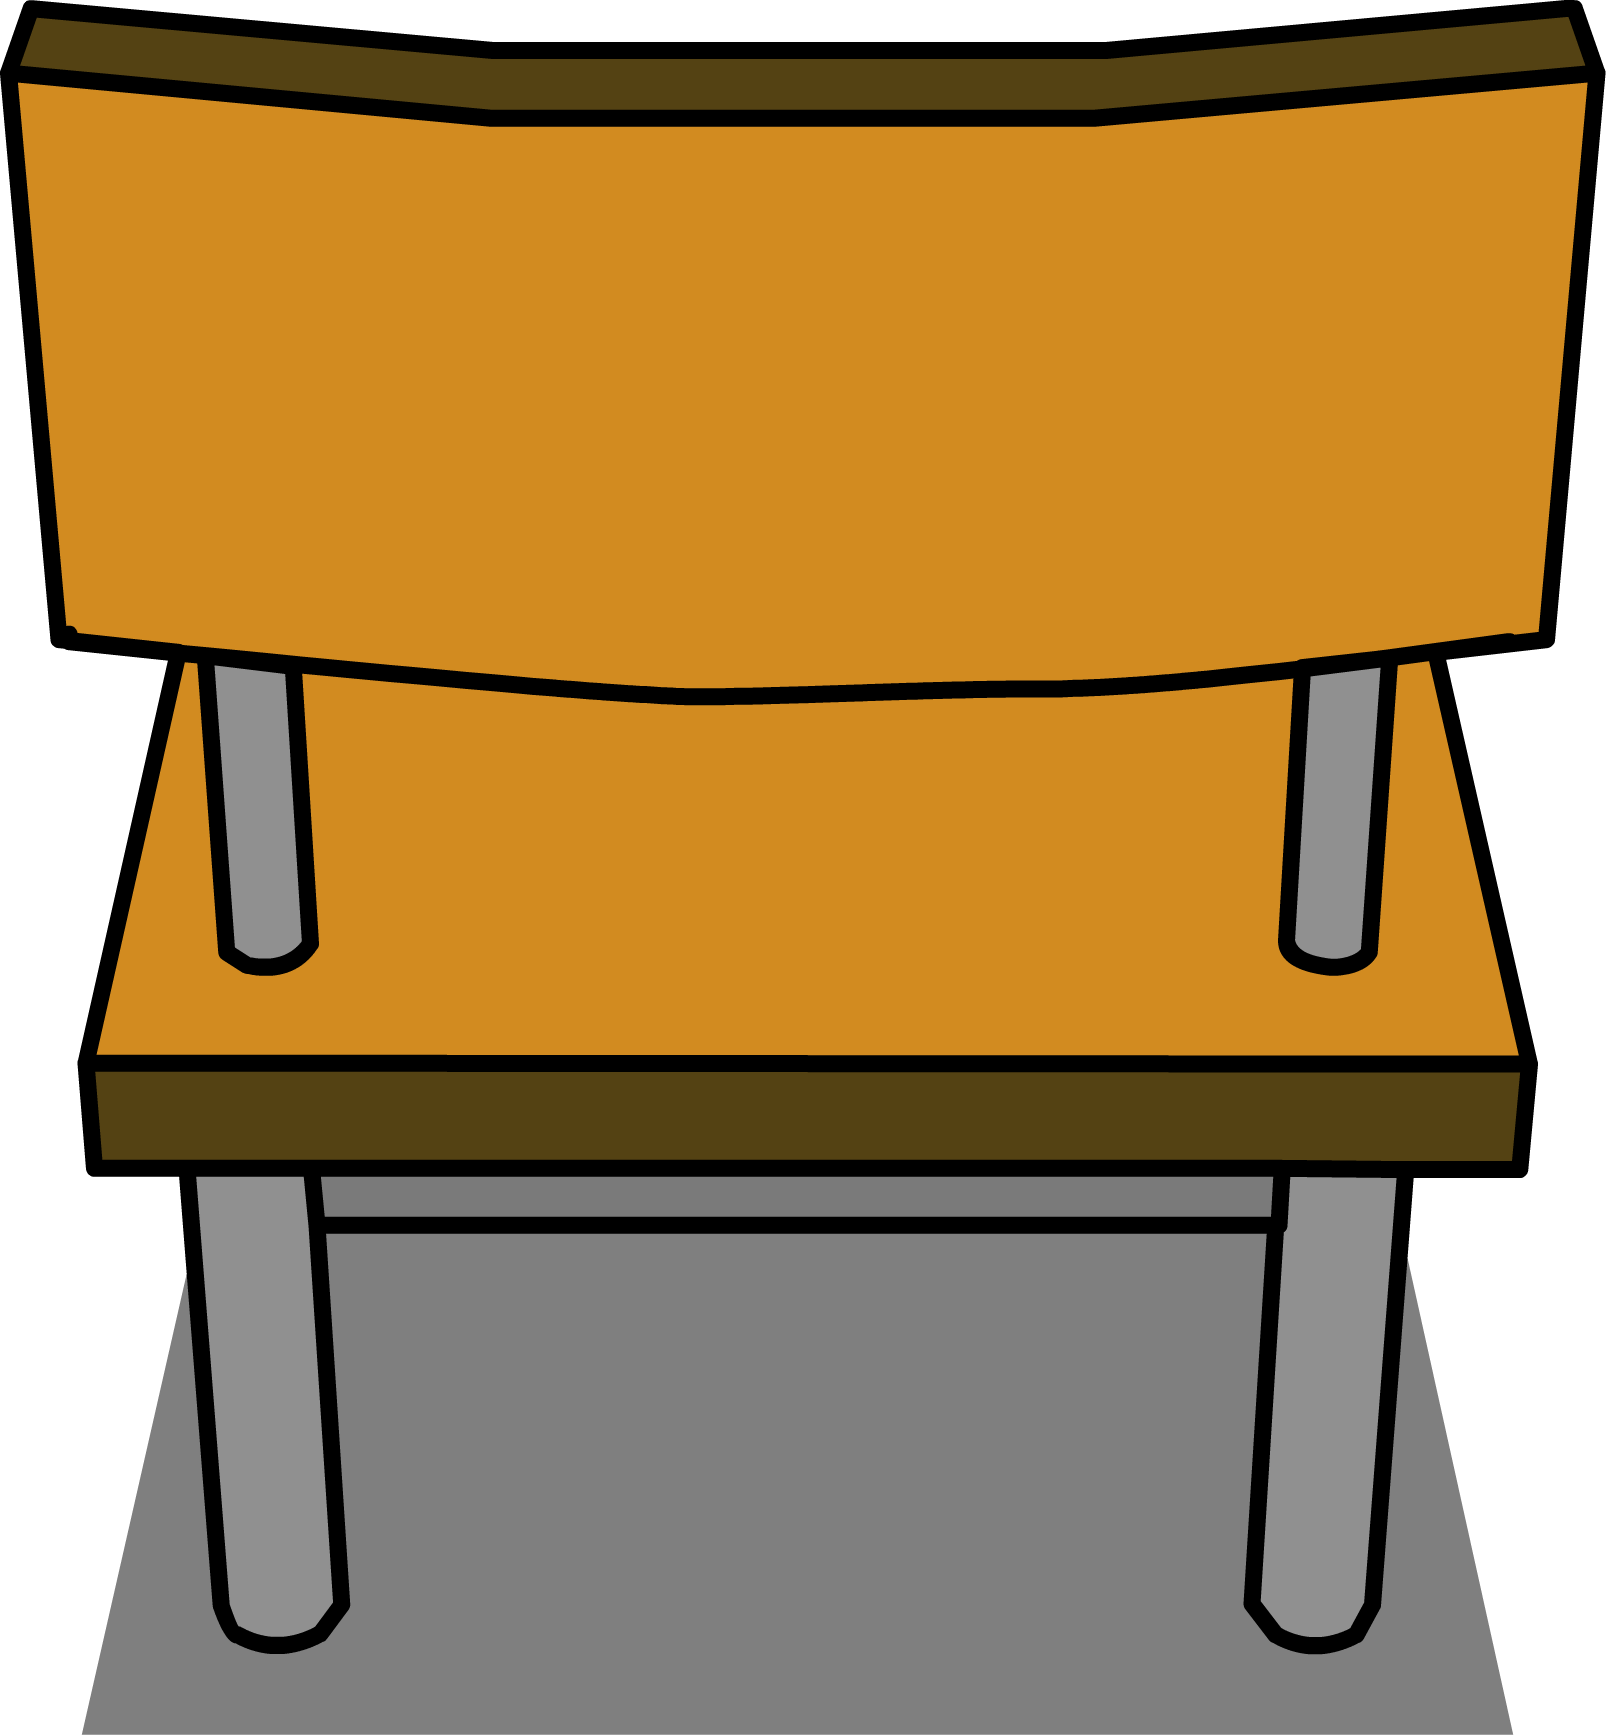 Image chair sprite png. Furniture clipart classroom furniture